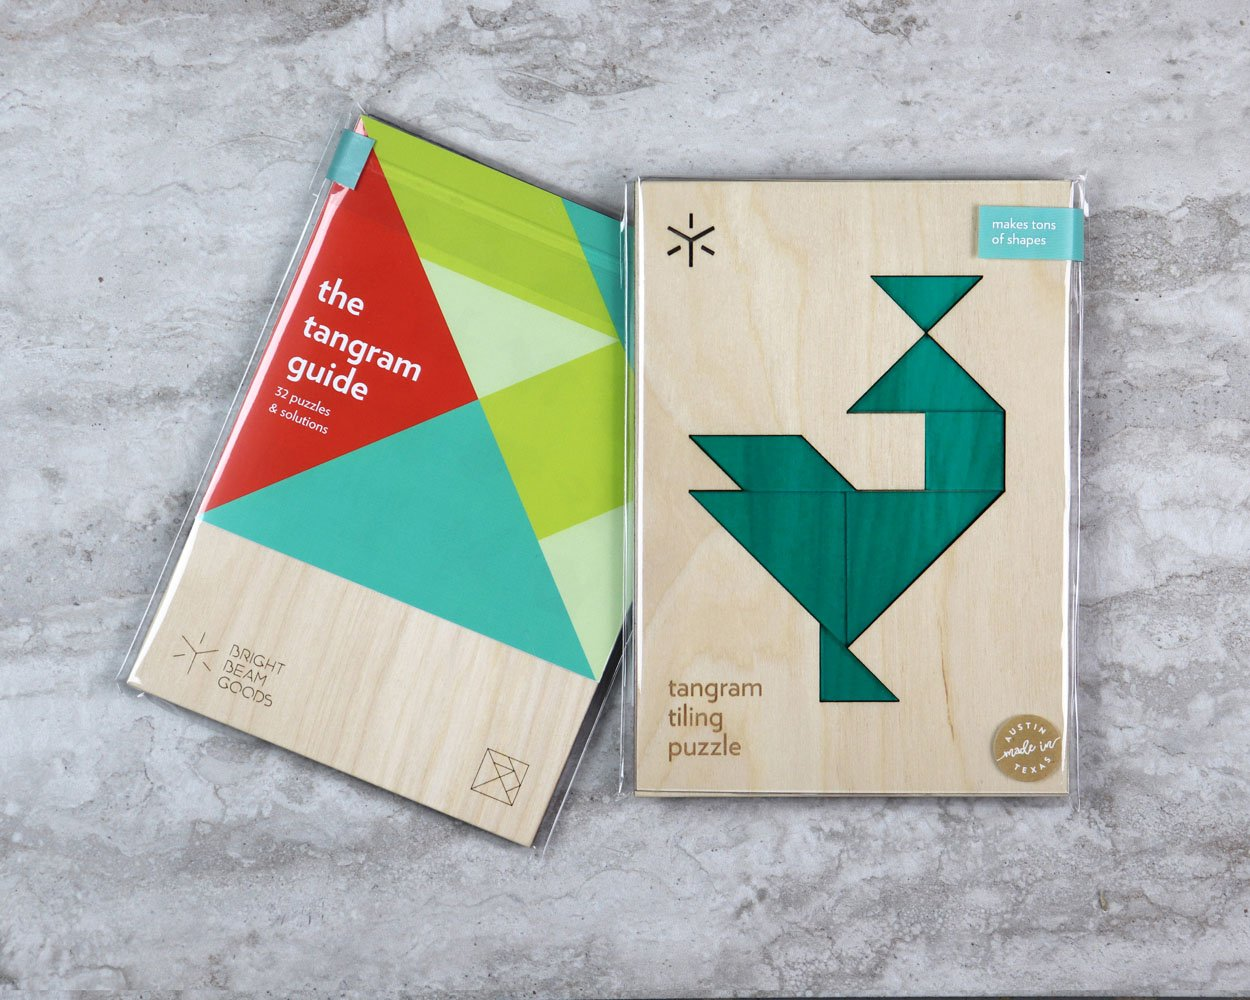 Peacock tangram puzzle in packaging